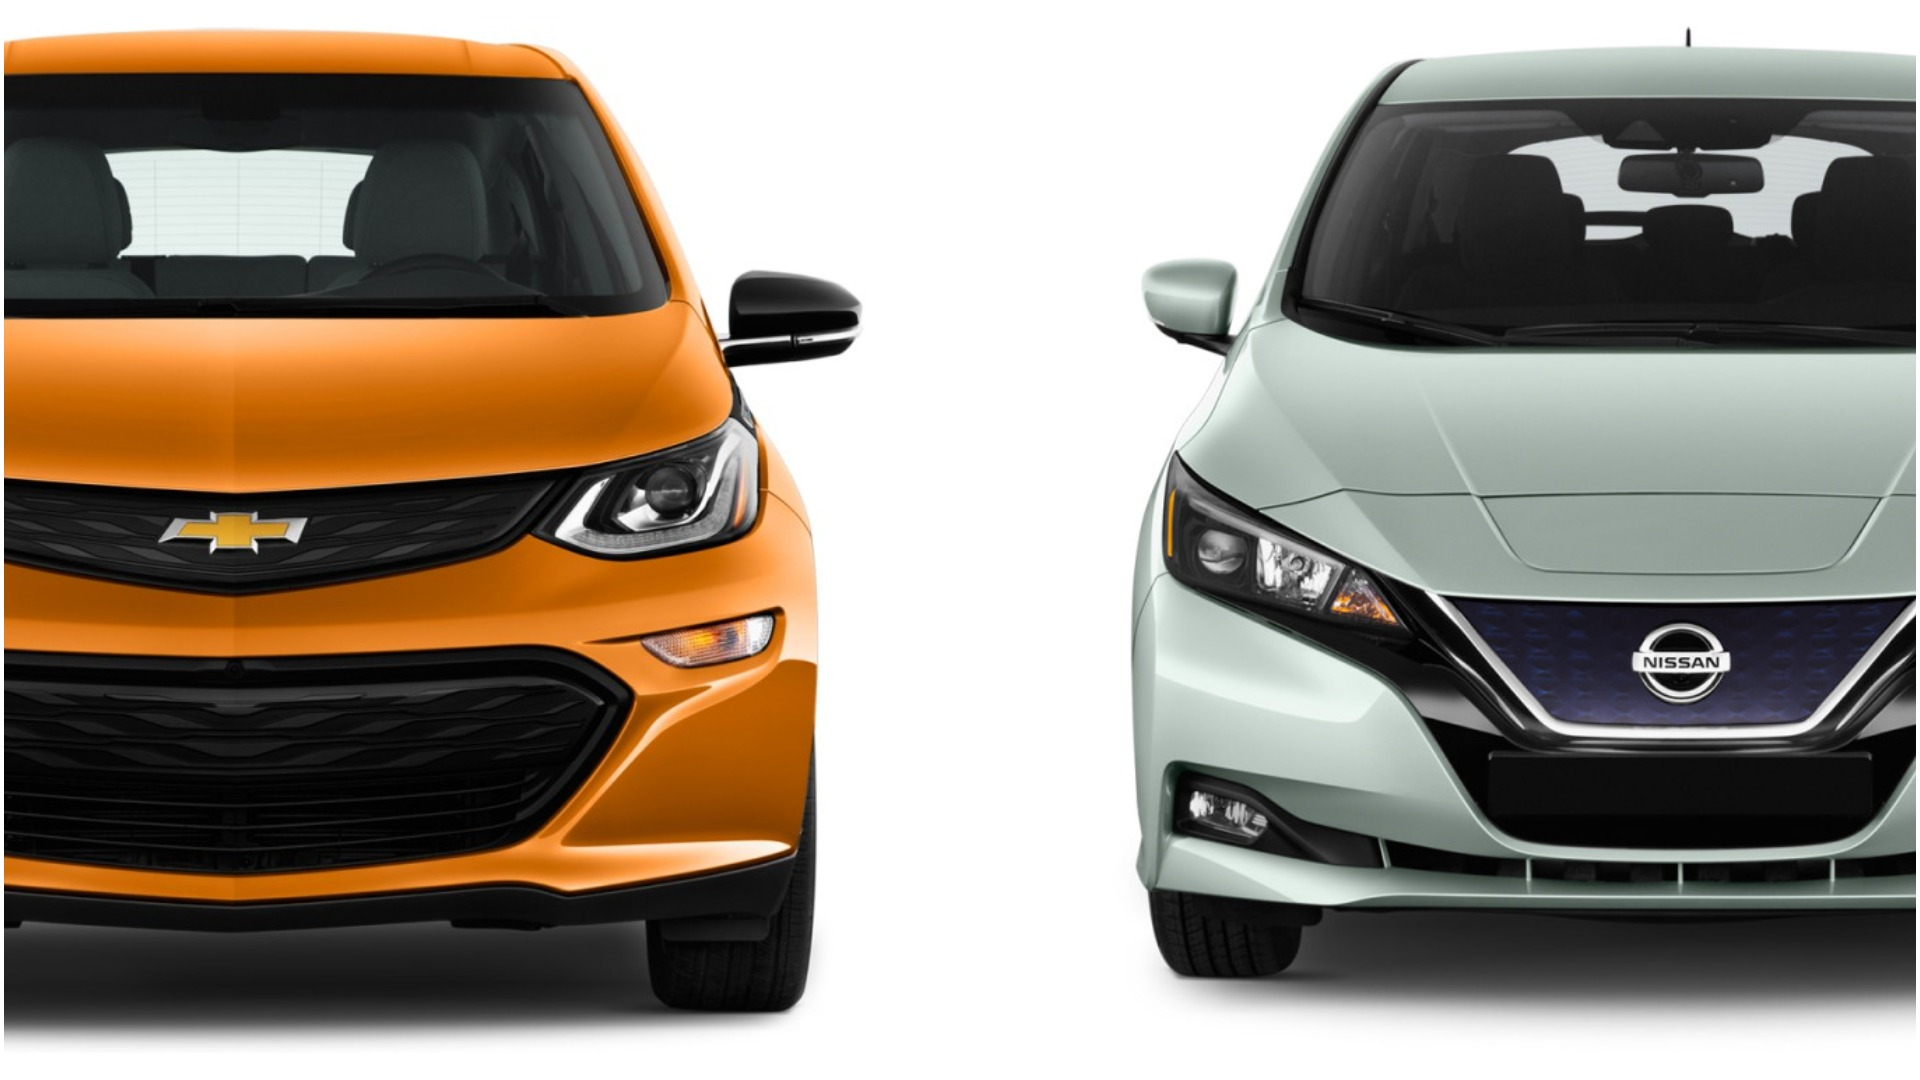 2019 Nissan Leaf Plus vs. 2019 Chevrolet Bolt EV: Which electric car is best?